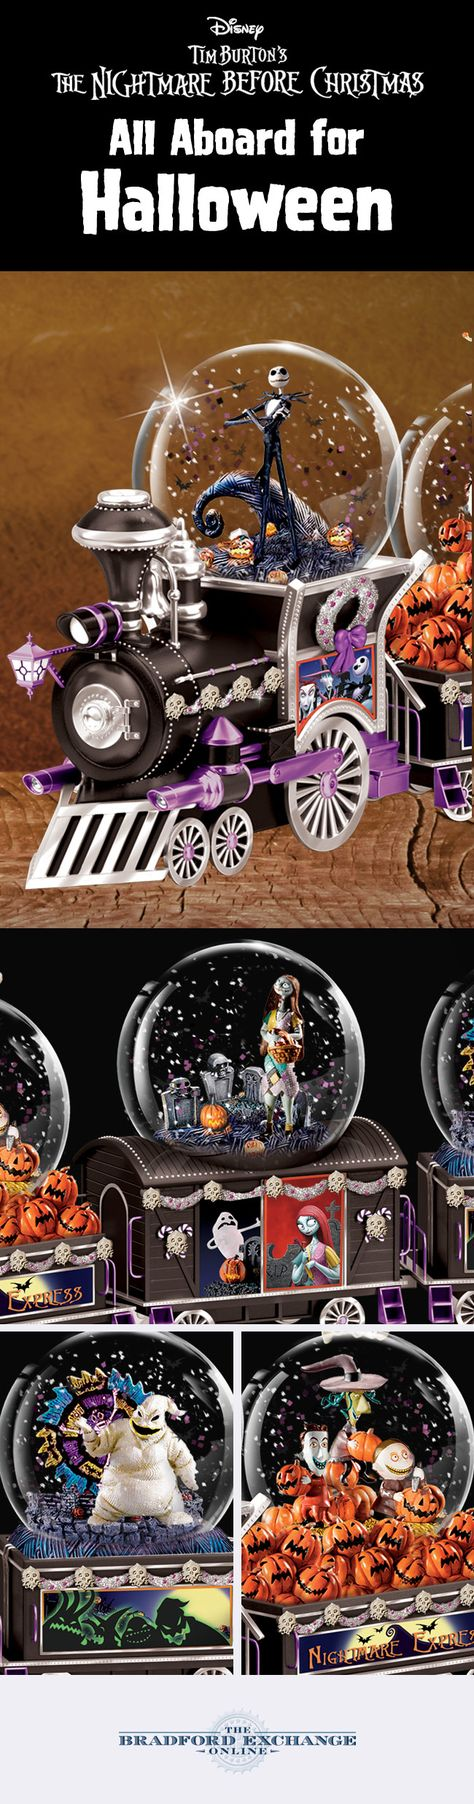 The Nightmare Before Christmas Musical Glitter Globe Train Nightmare Before Christmas Nightmare Before Christmas Musical Christmas Snow Globes